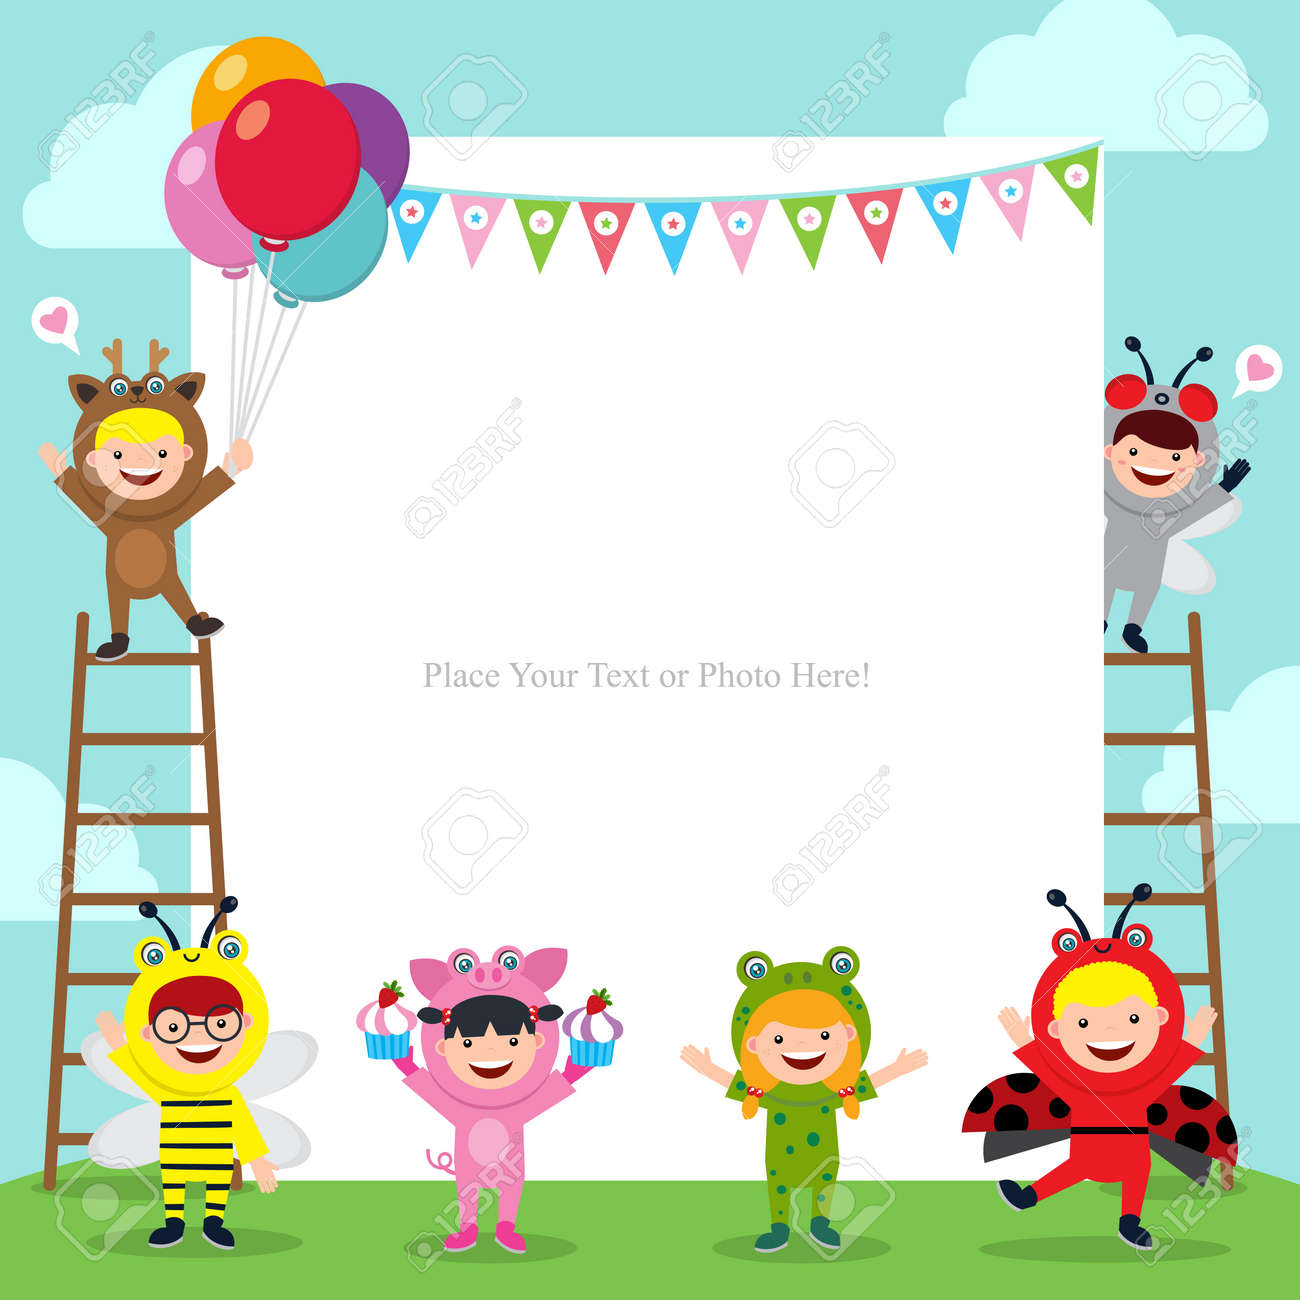 Tremendous Birthday Card Template With Kids In Animal Costume Royalty Free Personalised Birthday Cards Paralily Jamesorg